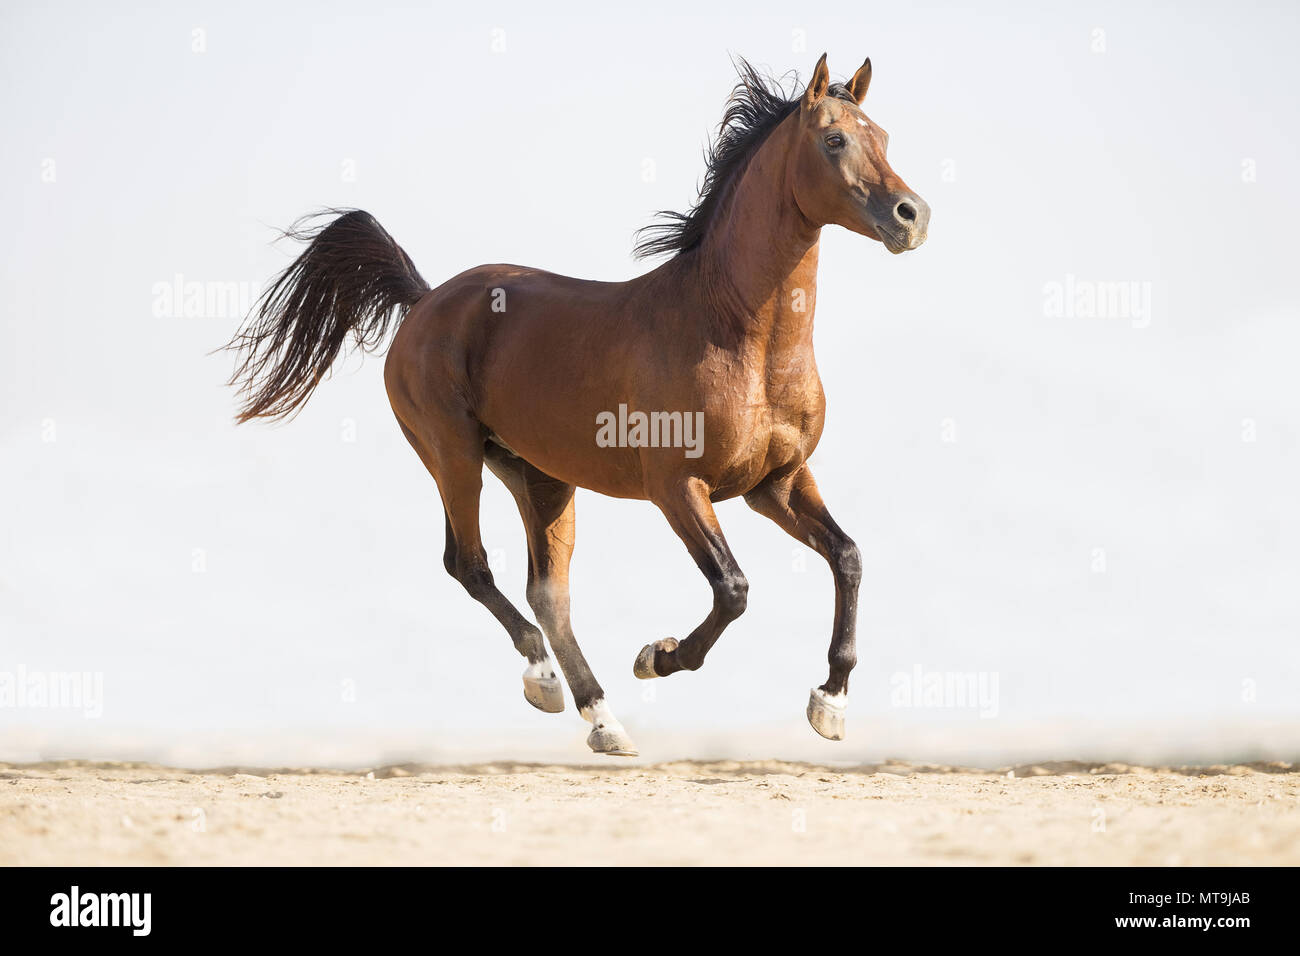 Arabian Horse. Bay stallion galloping in the desert. Abu Dhabi - Stock Image